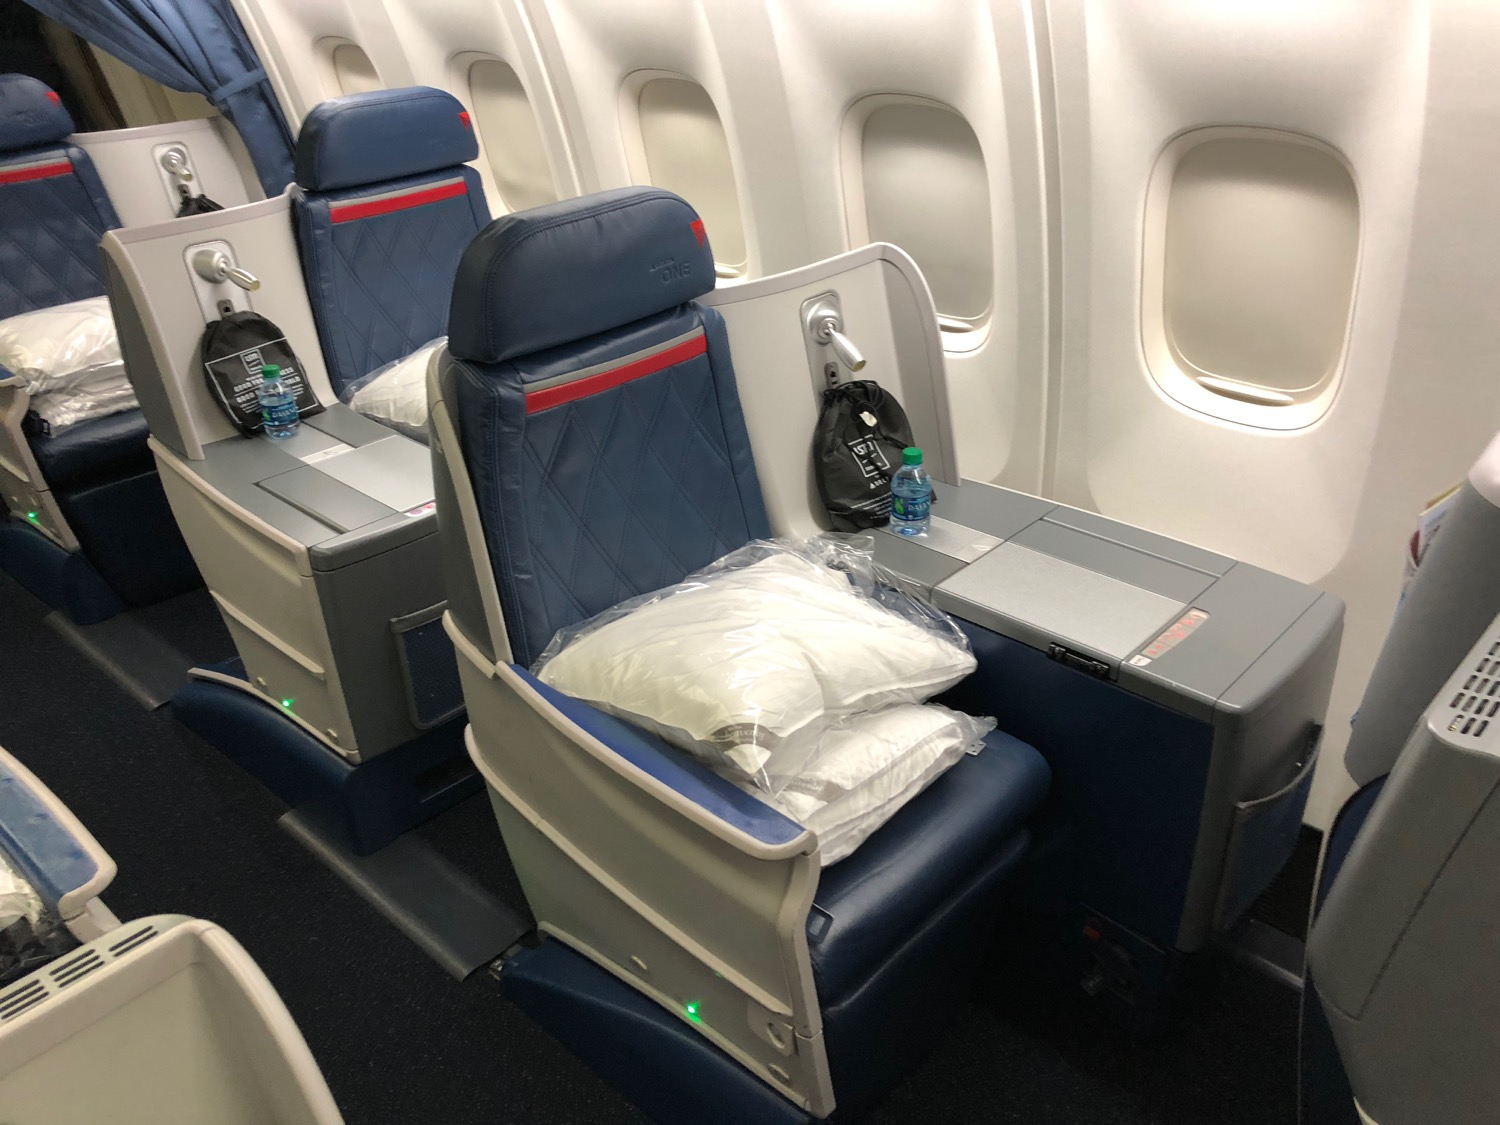 Review: Delta First Class (757 200), Seattle to New York